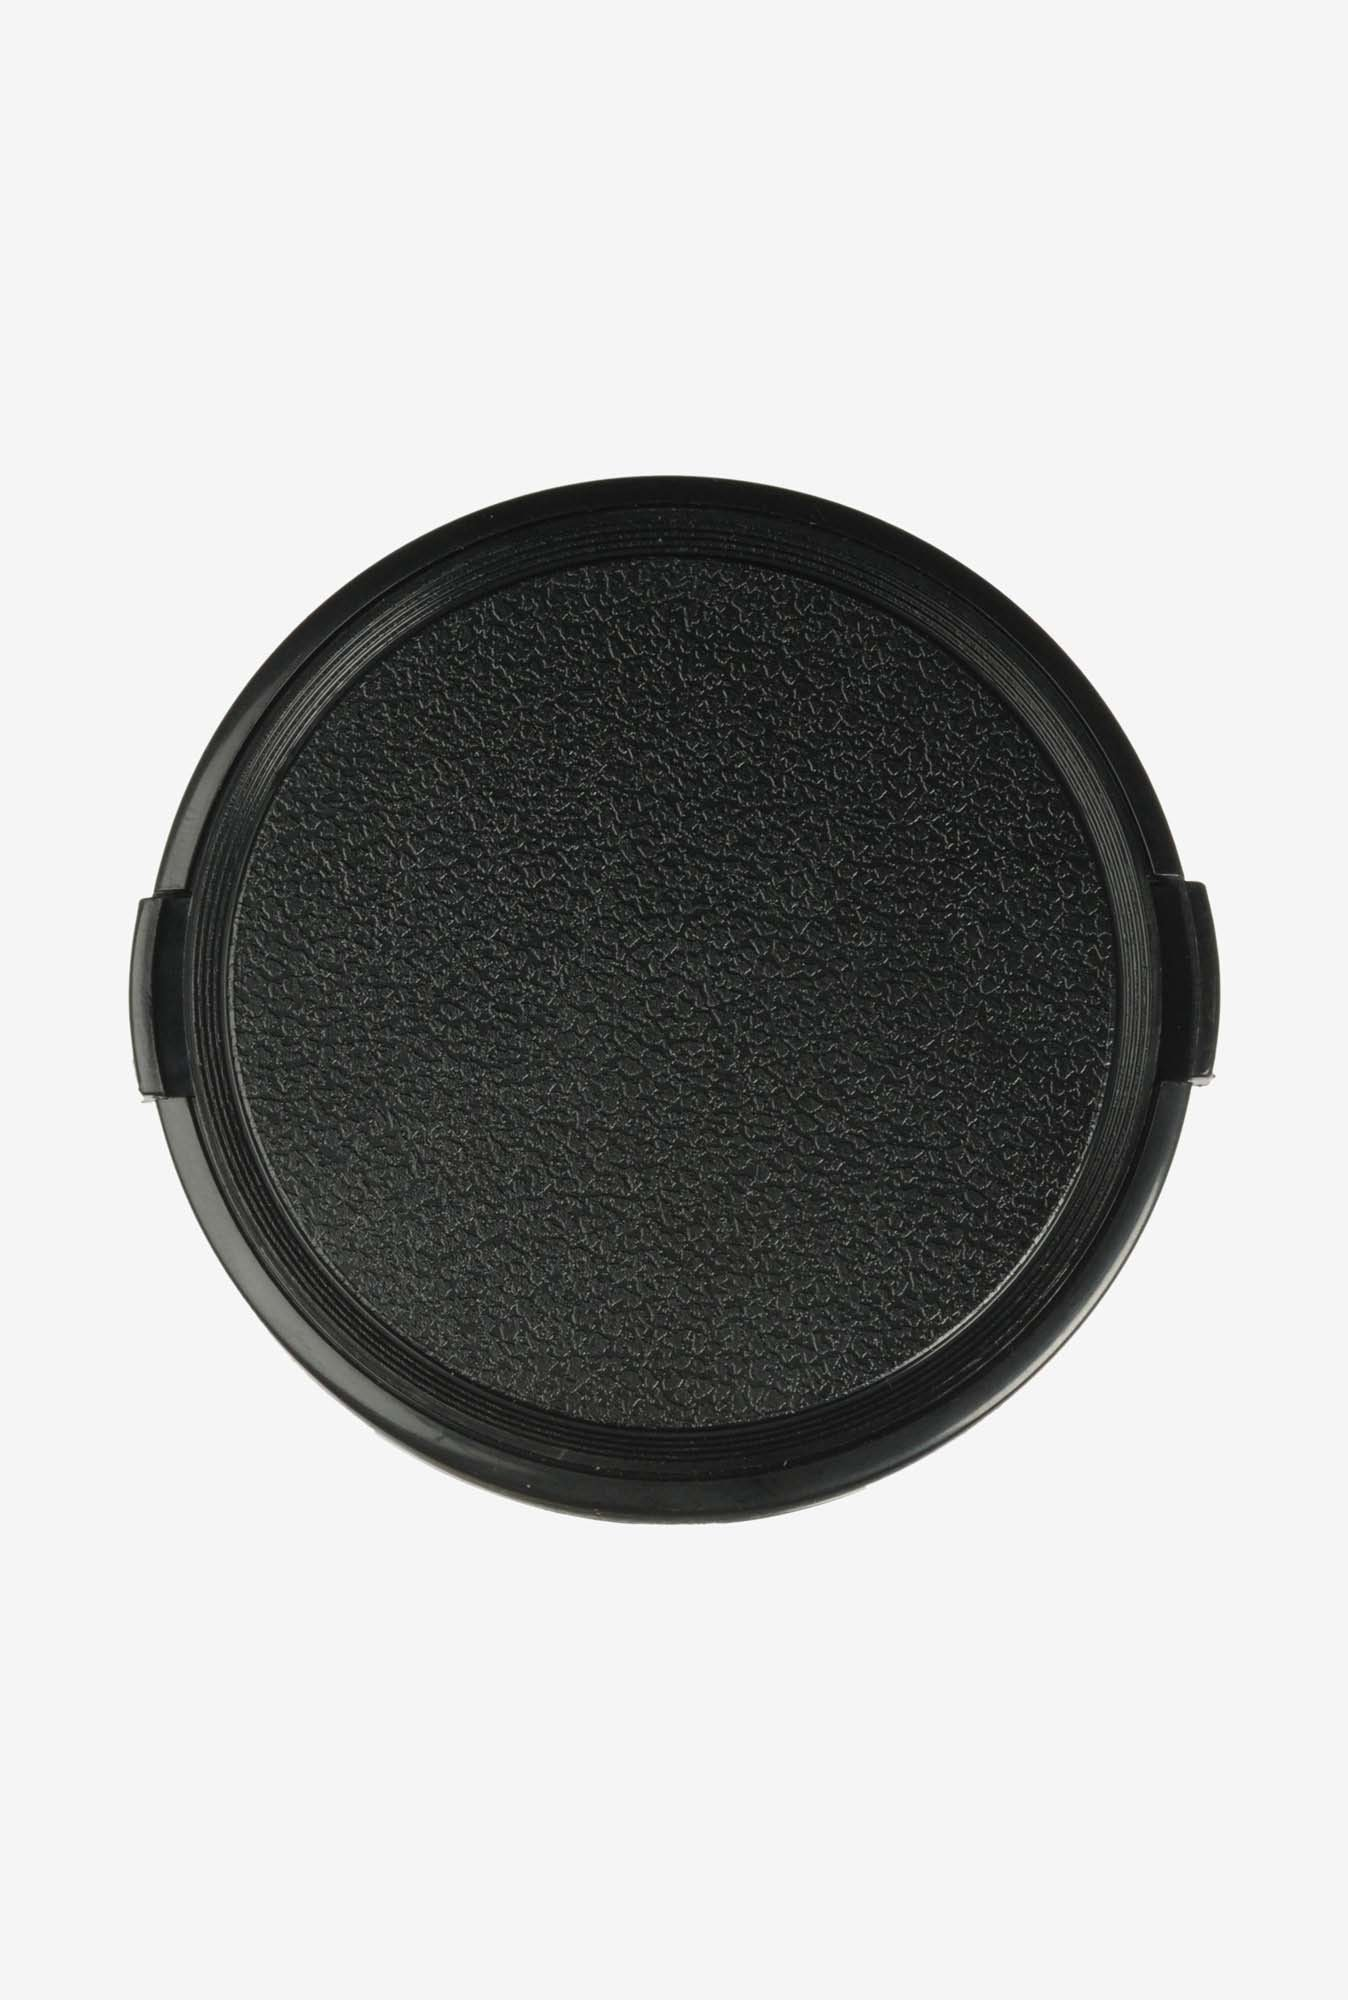 Sensei LCC405 40.5mm Clip-On Lens Cap (Black)